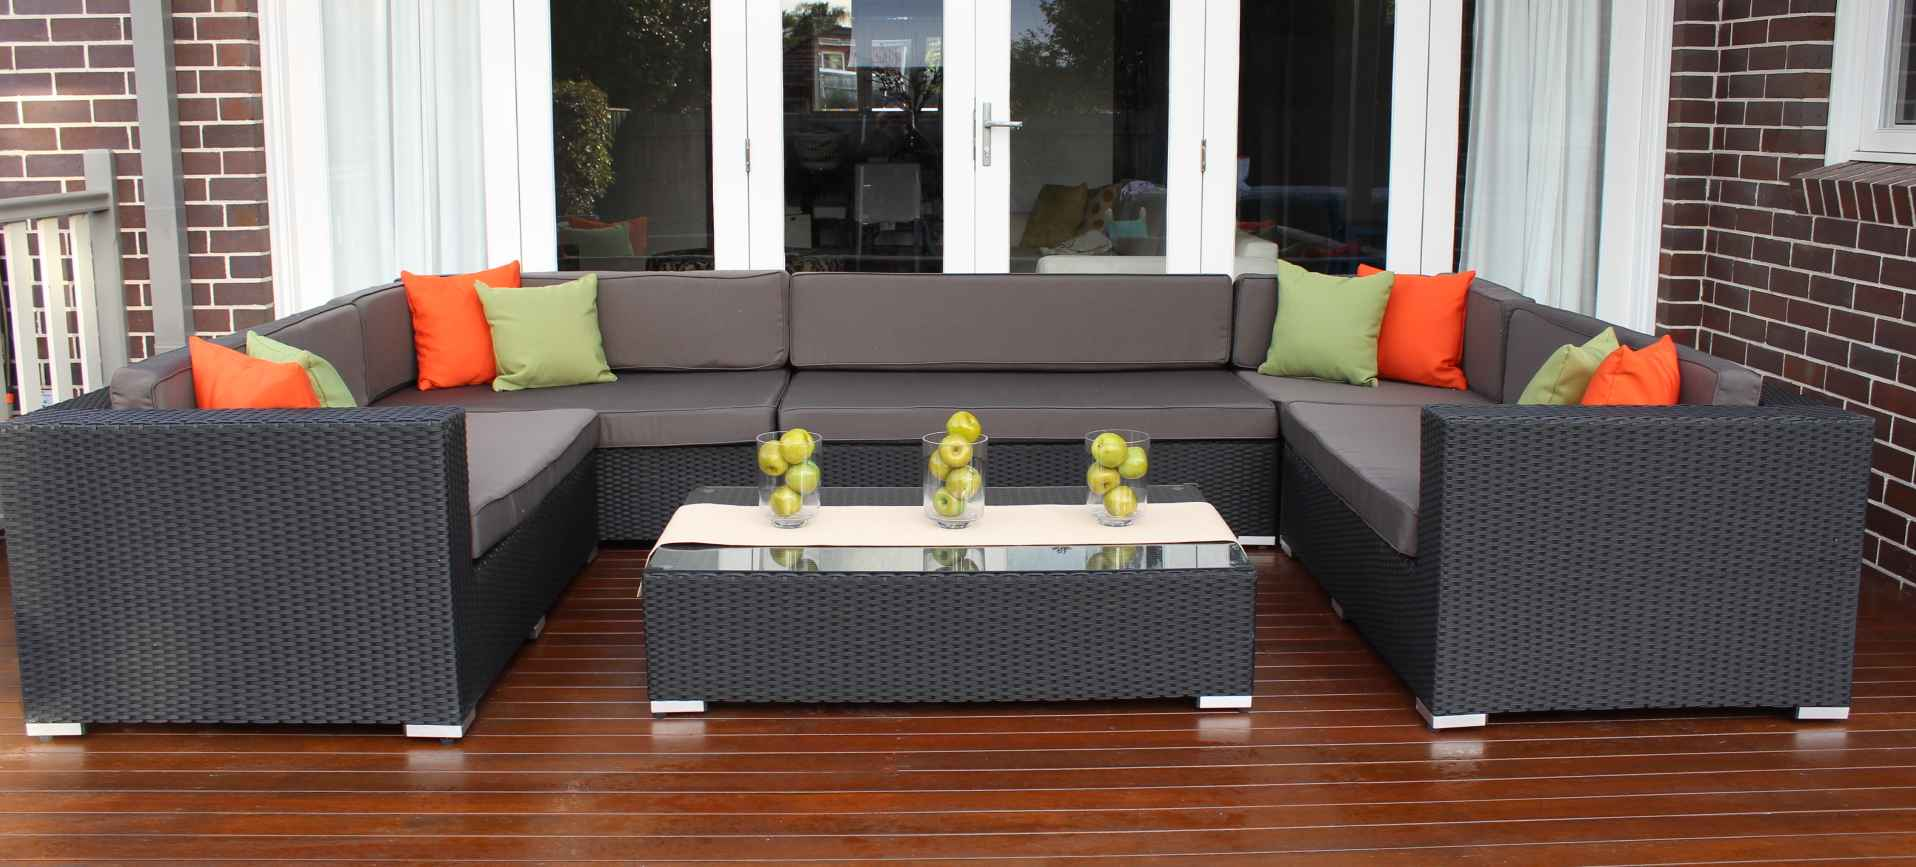 grand outdoor lounge settings charcoal hazelnut with charcoal fabric. Black Bedroom Furniture Sets. Home Design Ideas